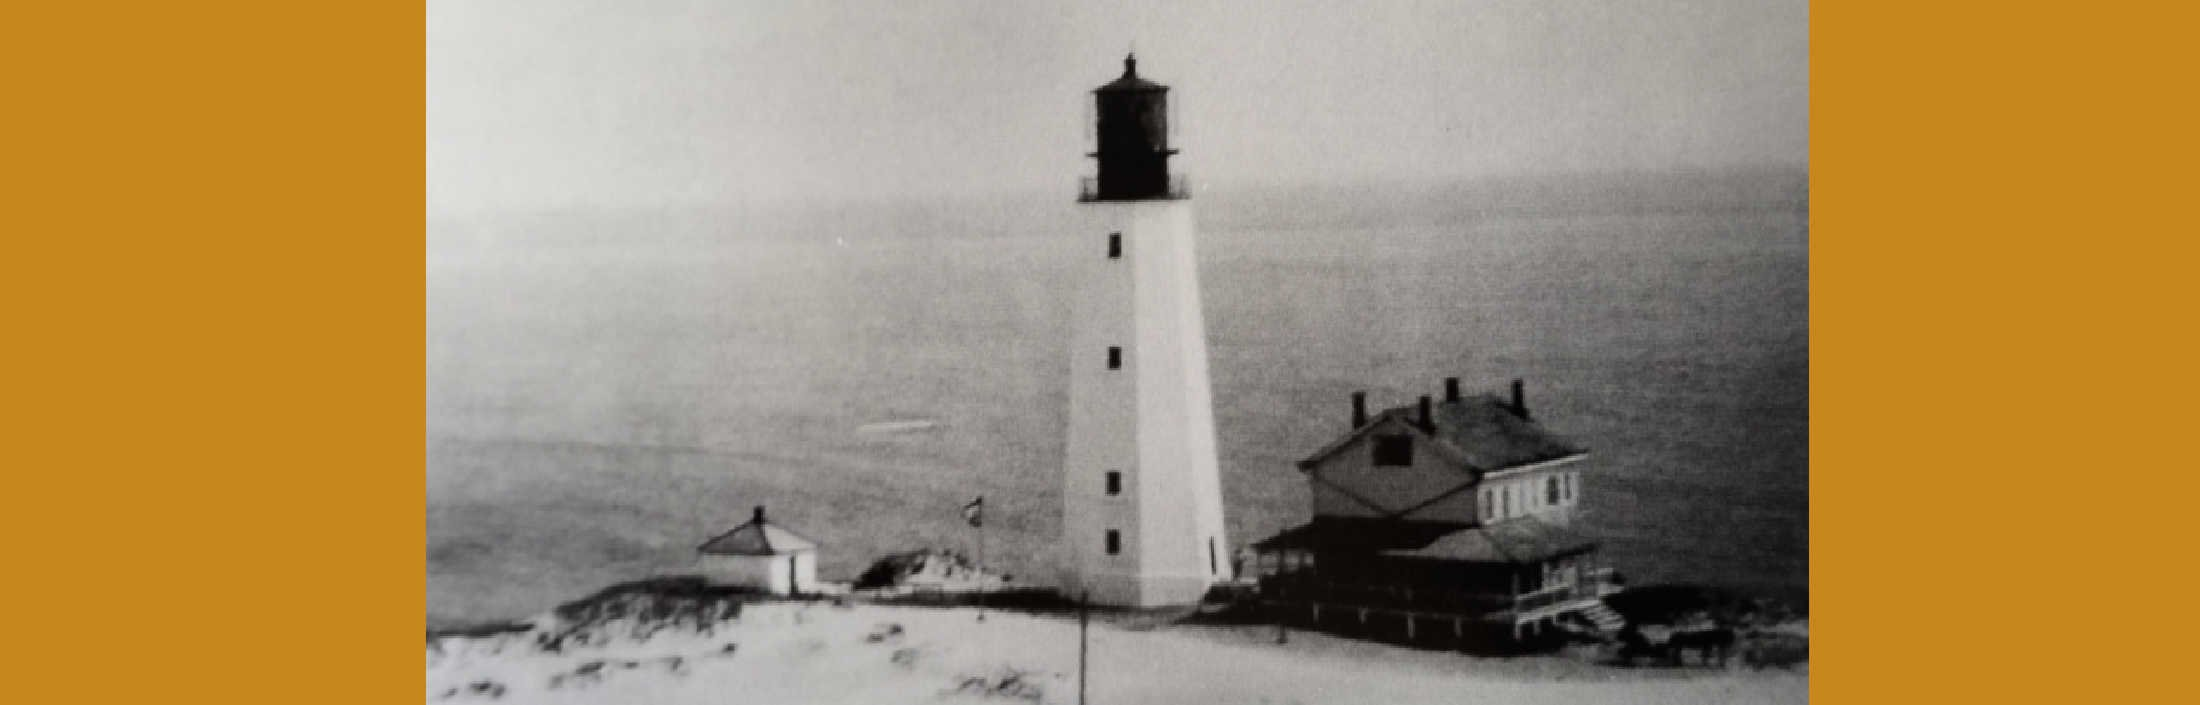 Fall of an 'Ancient Warrior:' The Cape Henlopen Lighthouse Collapses, 1926